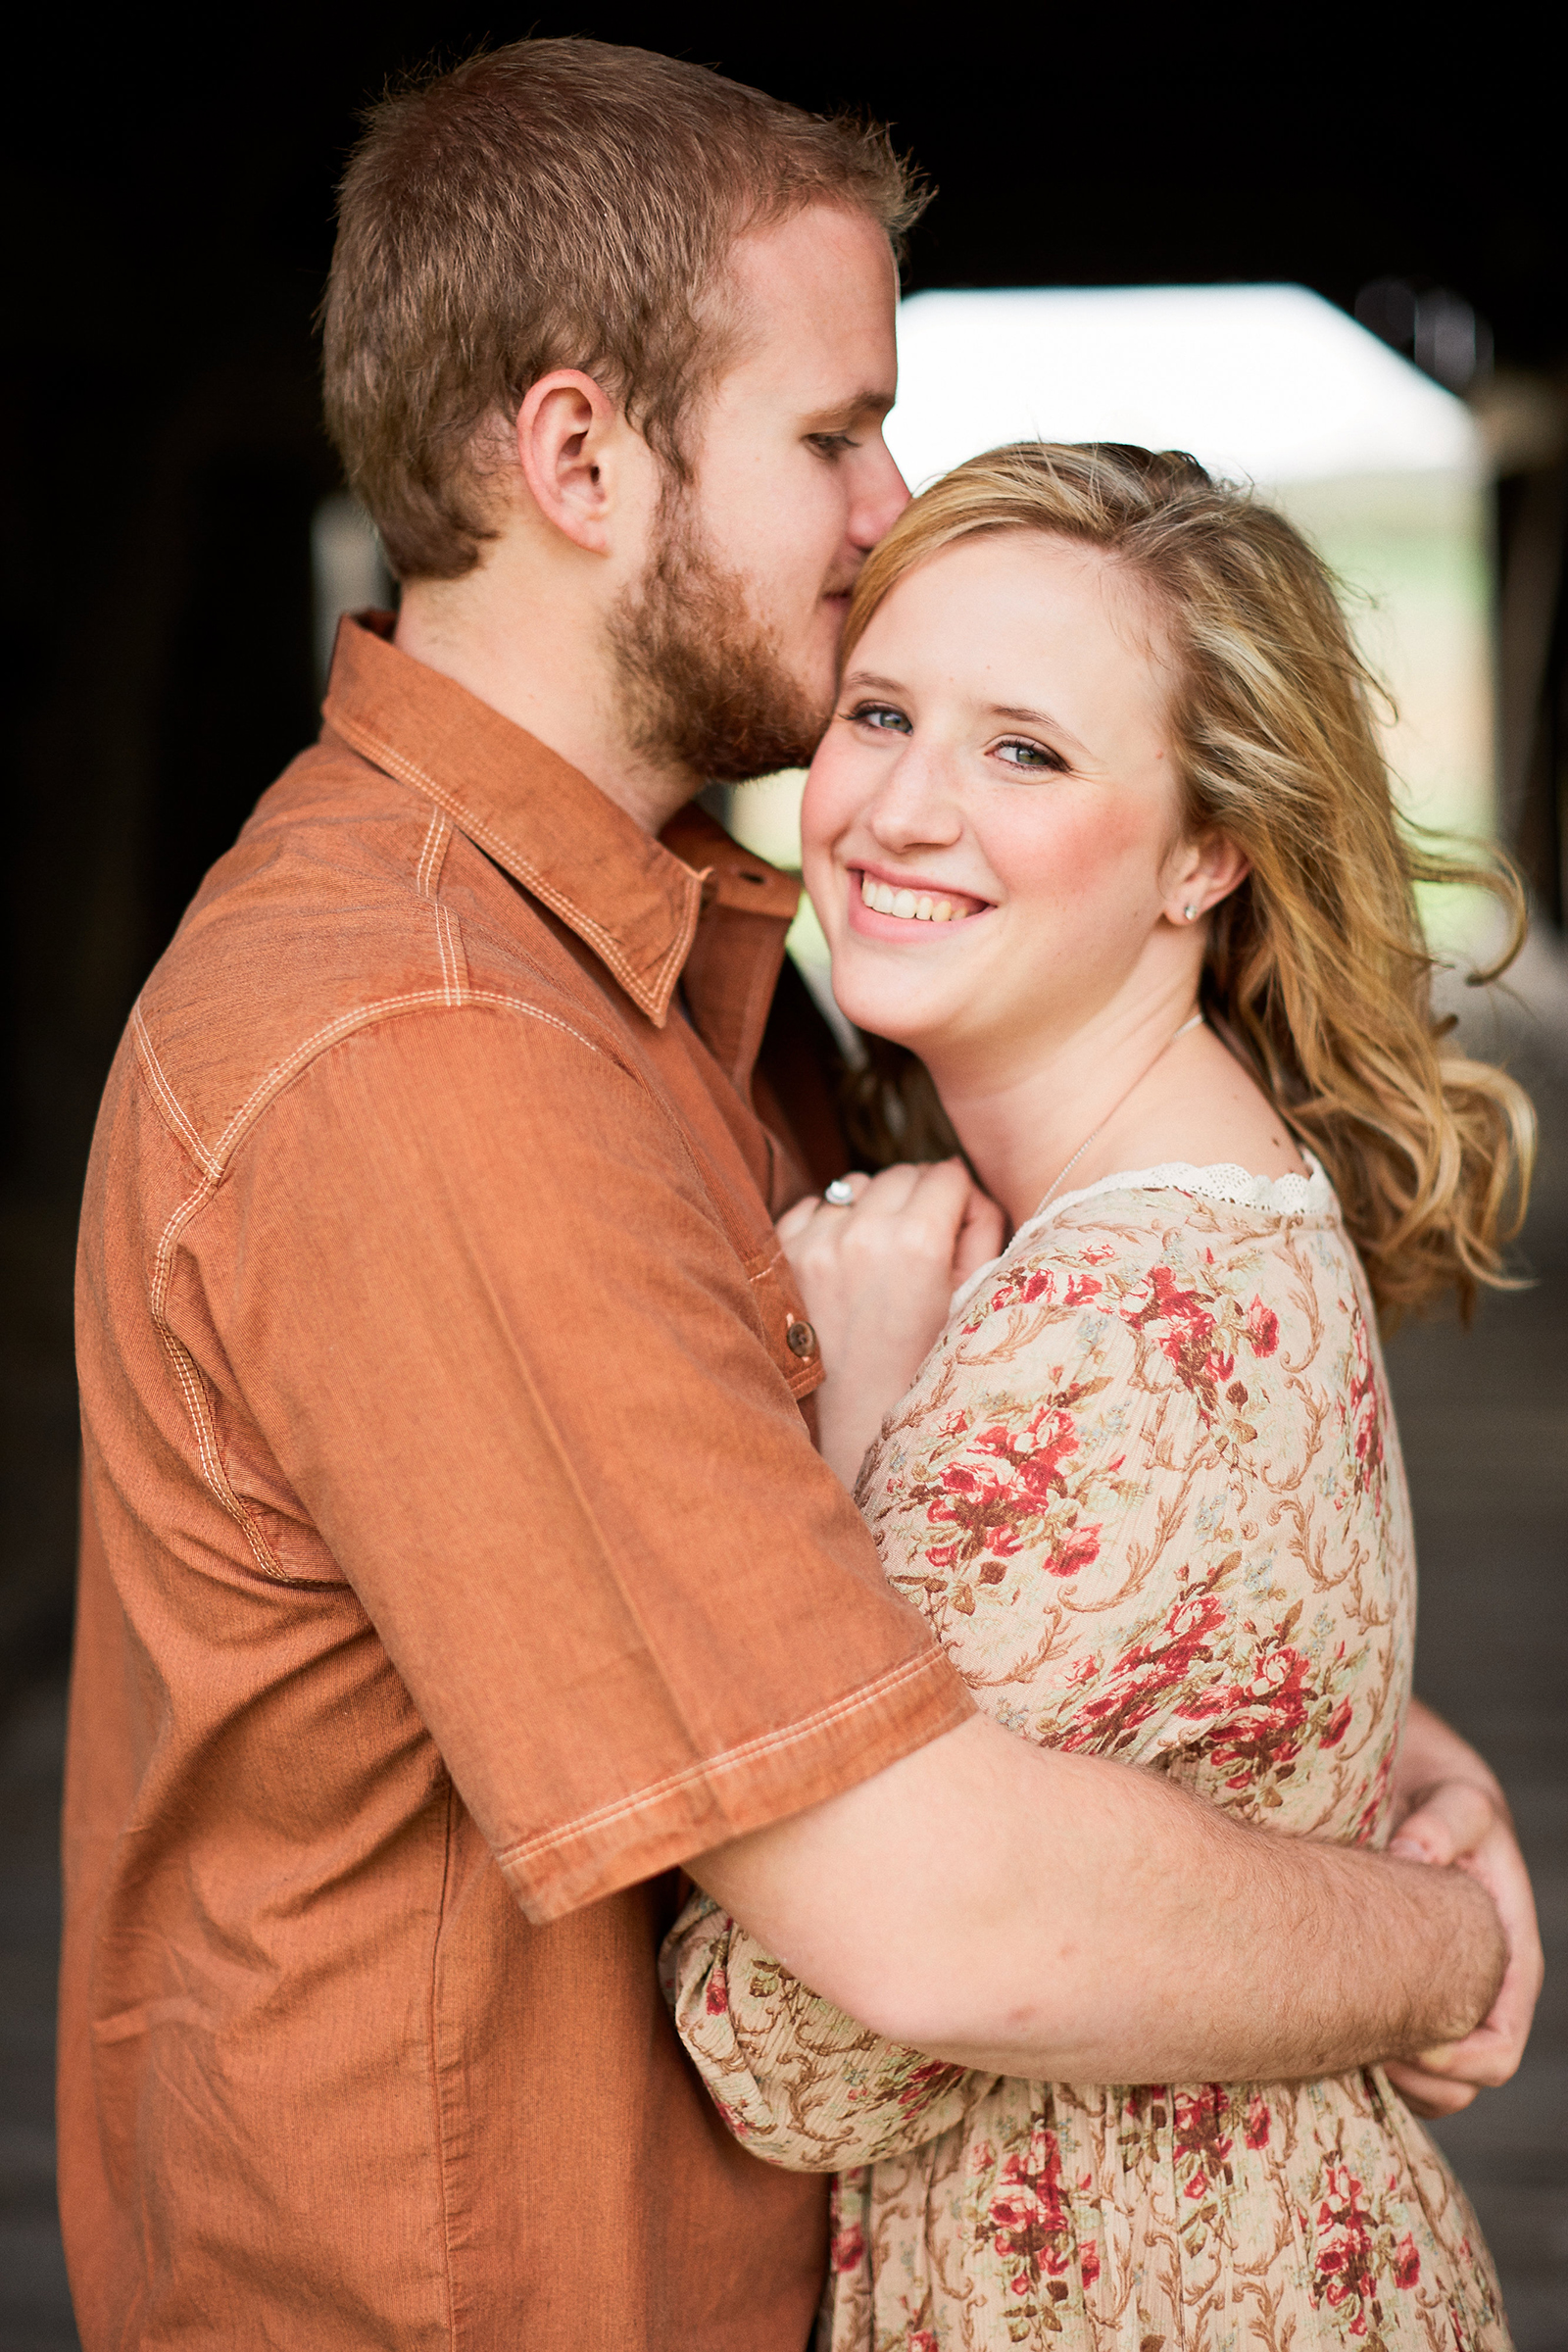 Daniel Boone Home Engagement Session in St Charles County by Oldani Photography St. Louis Wedding Photographers4.jpg